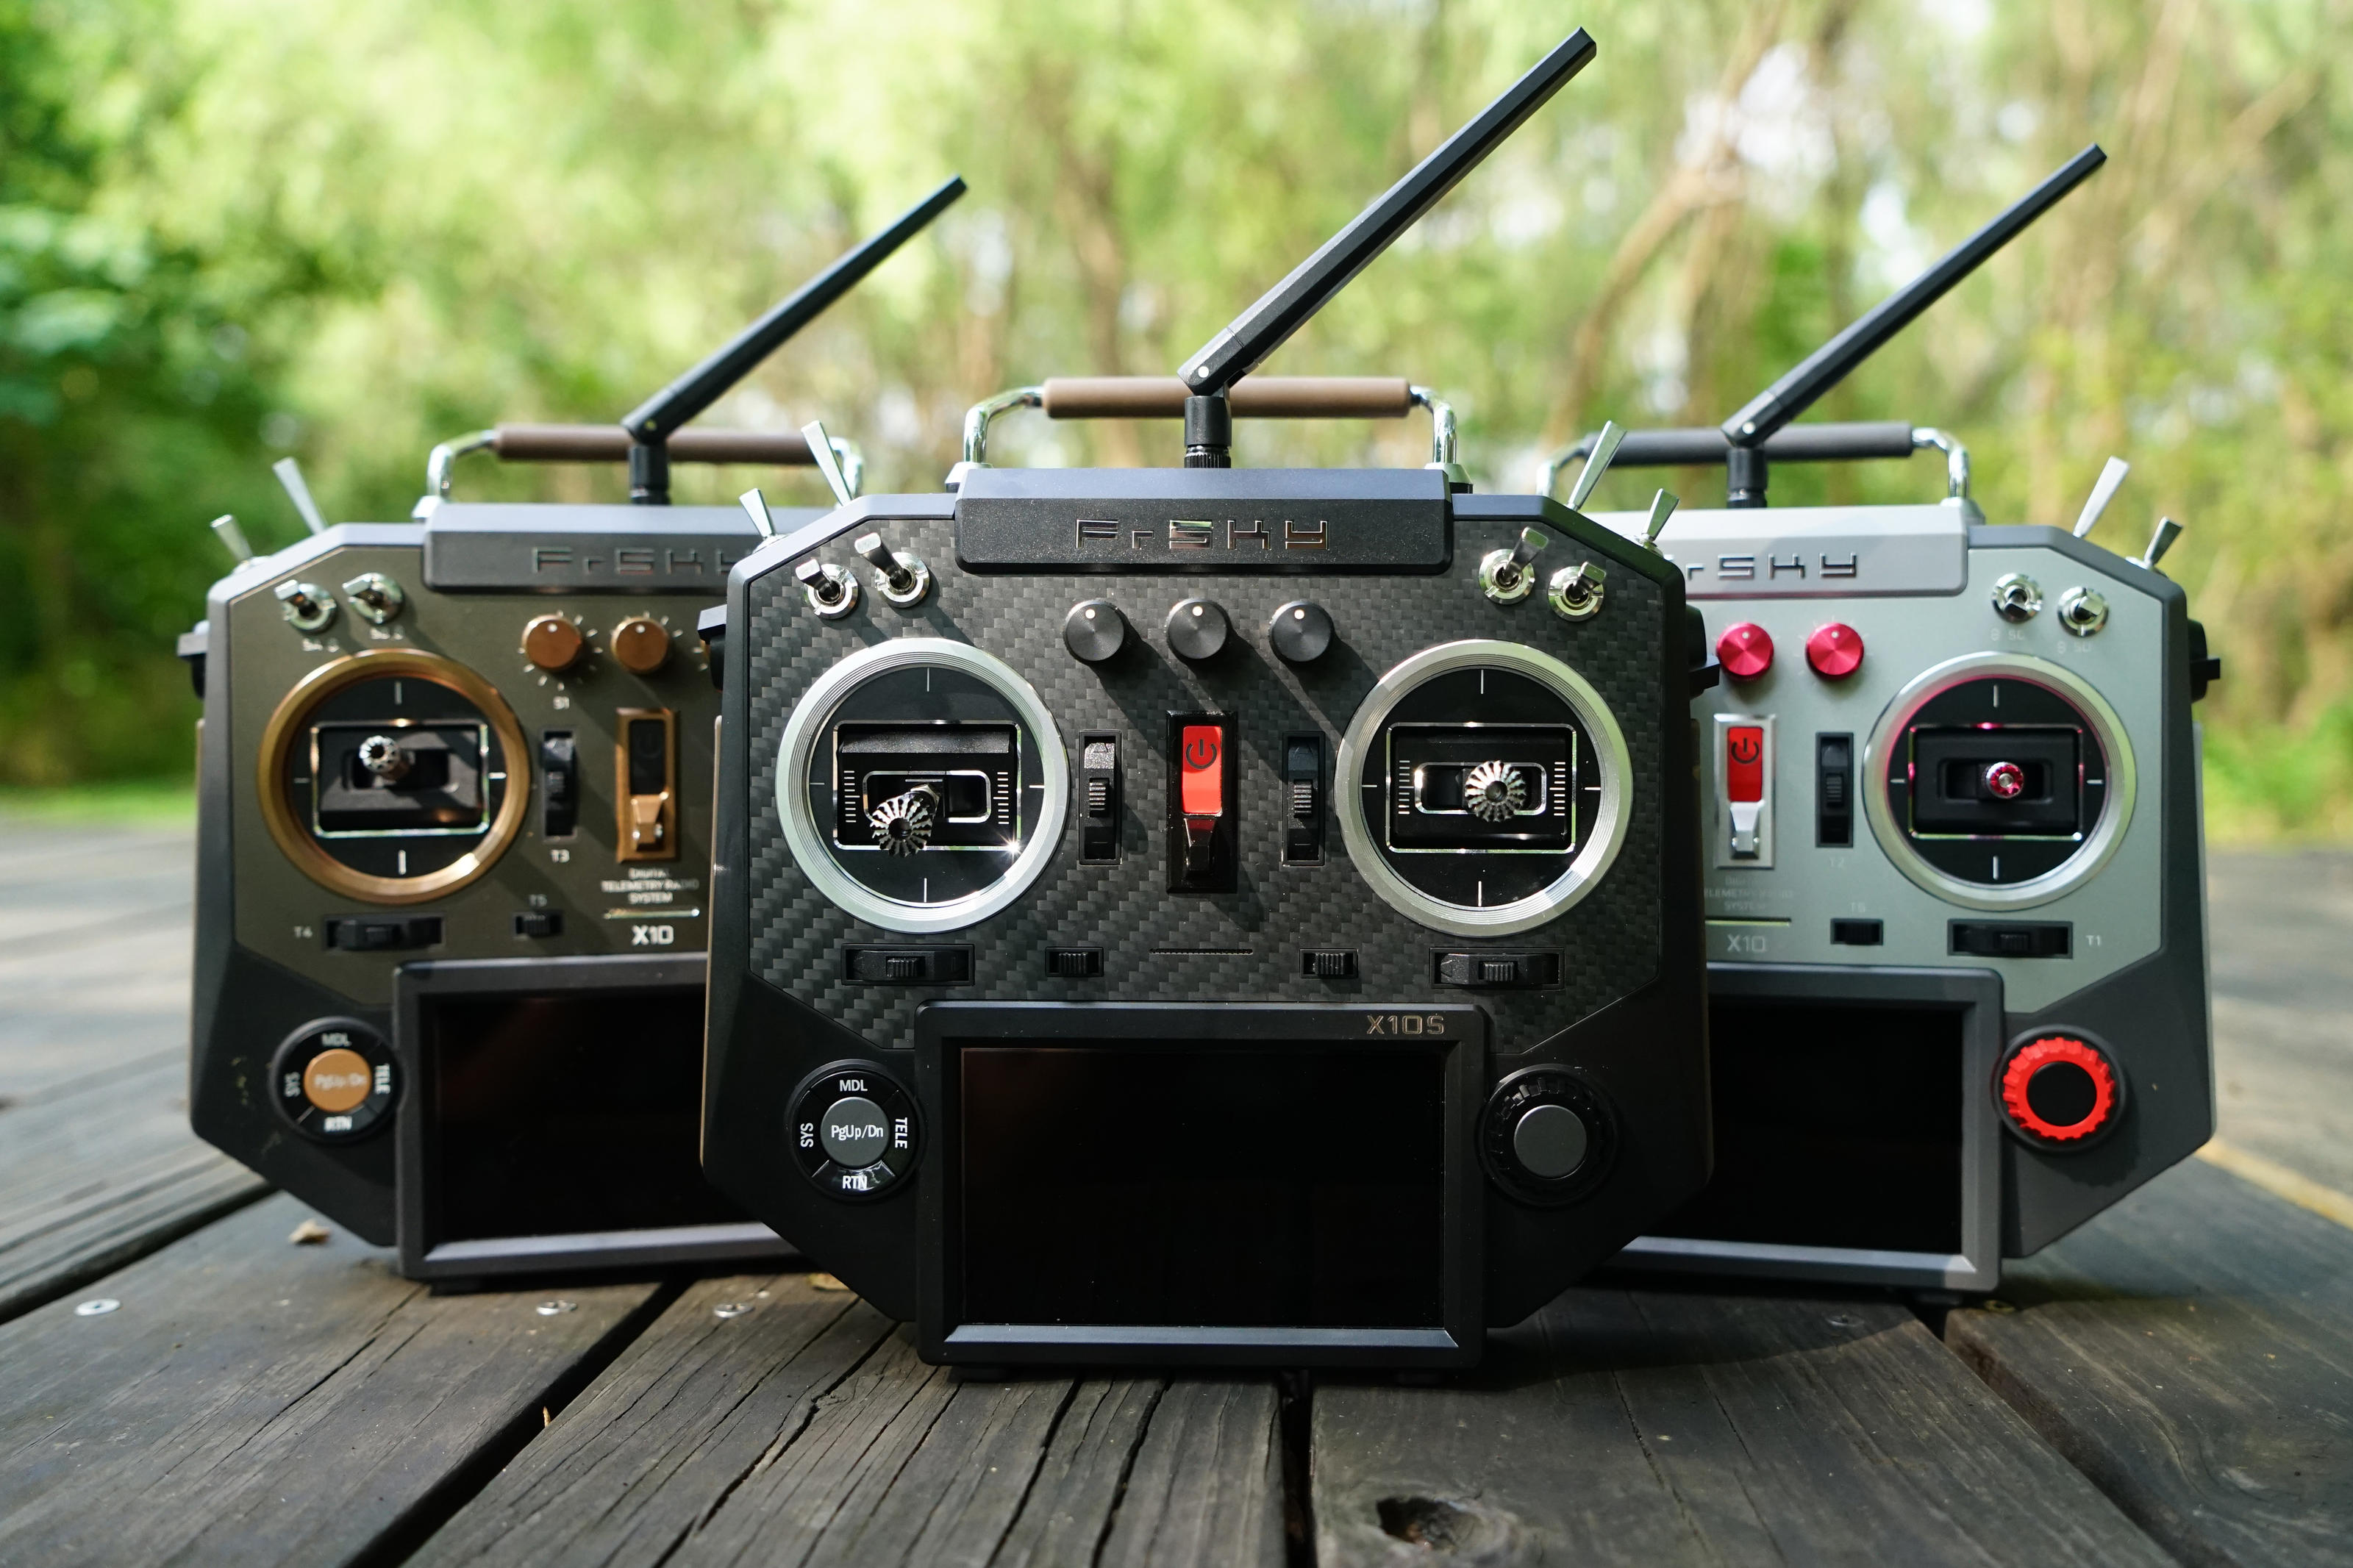 New Product FrSky Horus X10 and X10S transmitters release